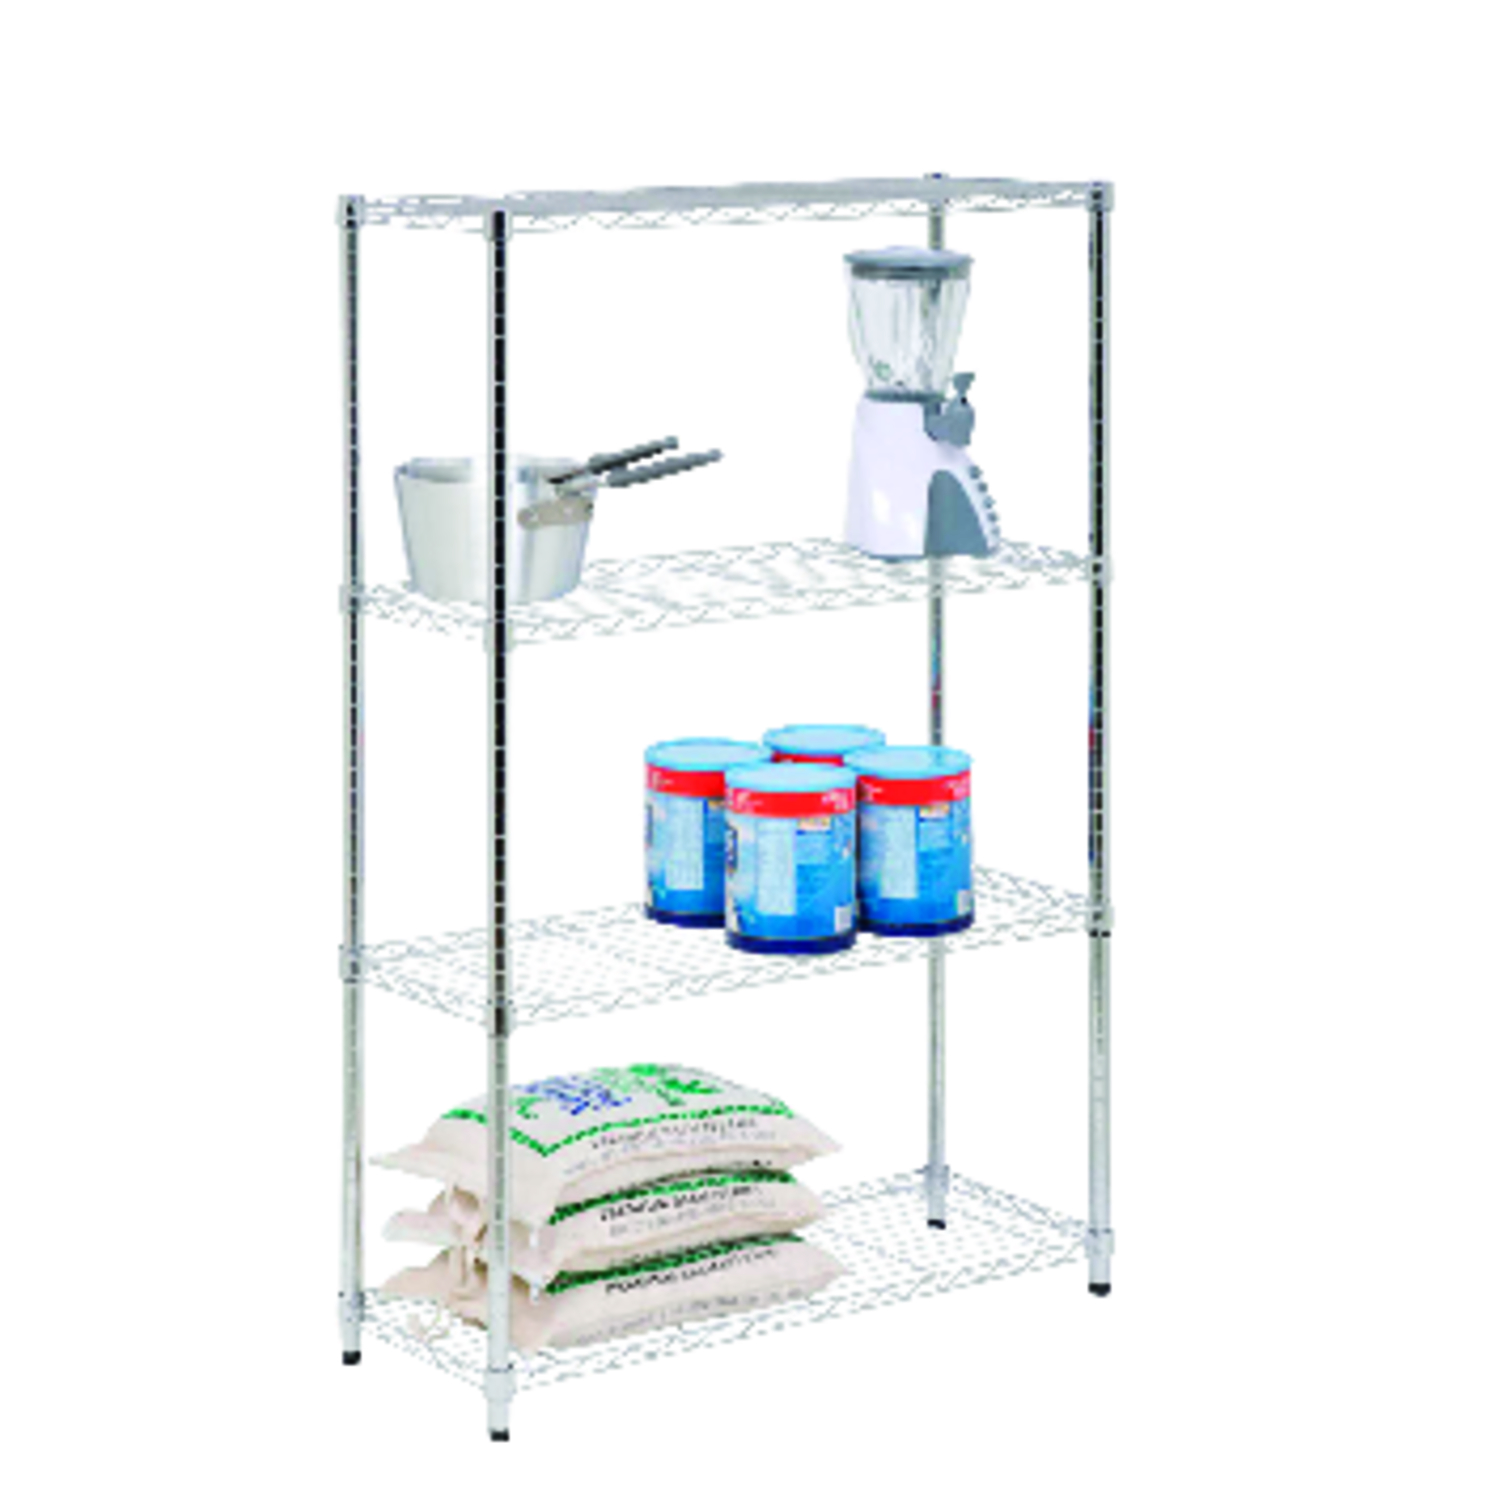 Honey Can Do  36 in. W x 14 in. D x 54 in. H Steel  Shelving Unit